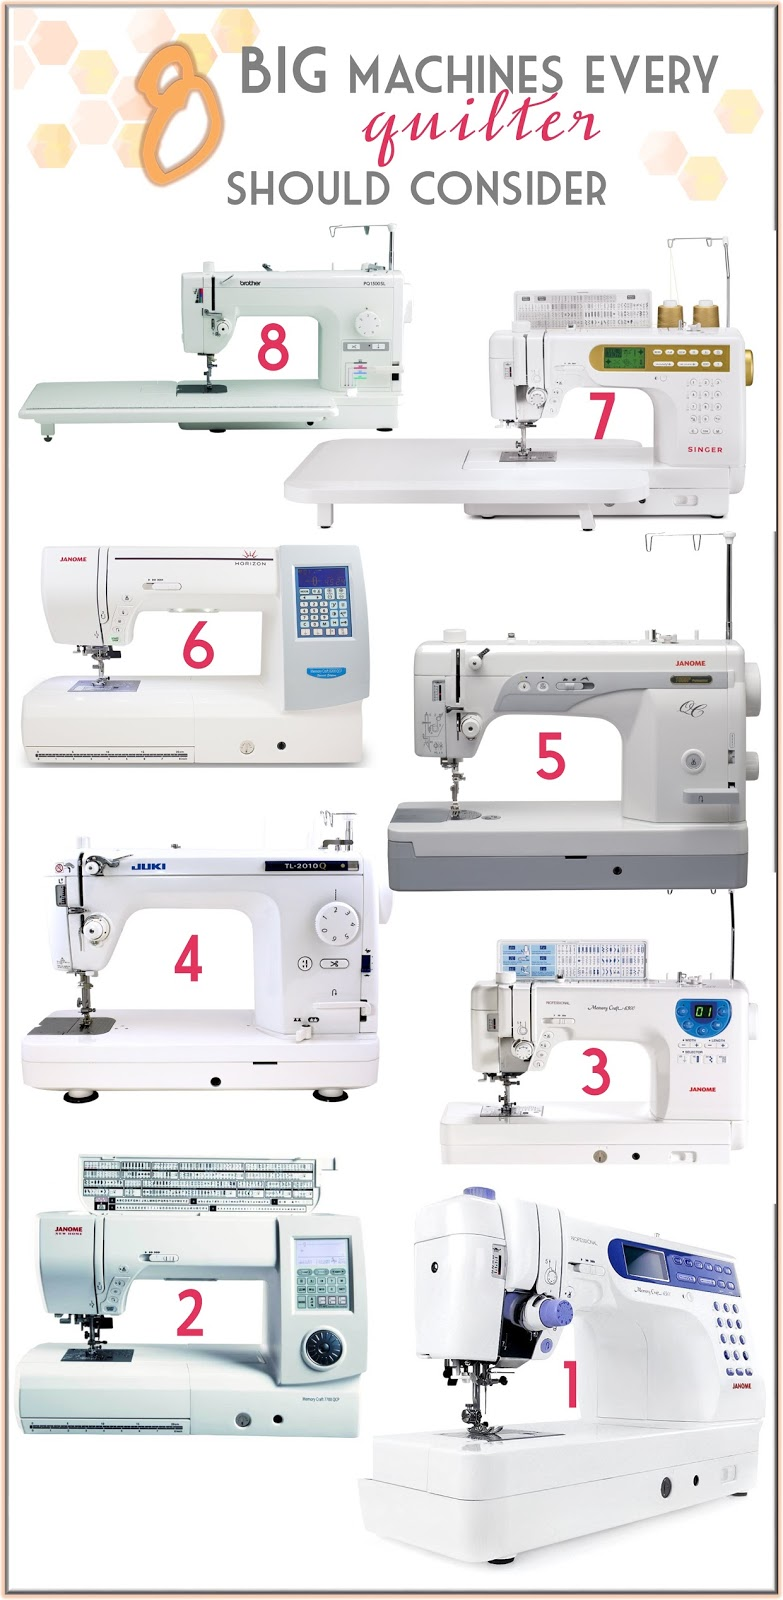 larger harped sewing machines great for quilters. Nice and big for all of those large quilting projects. Juki 2010, Janome 6500.